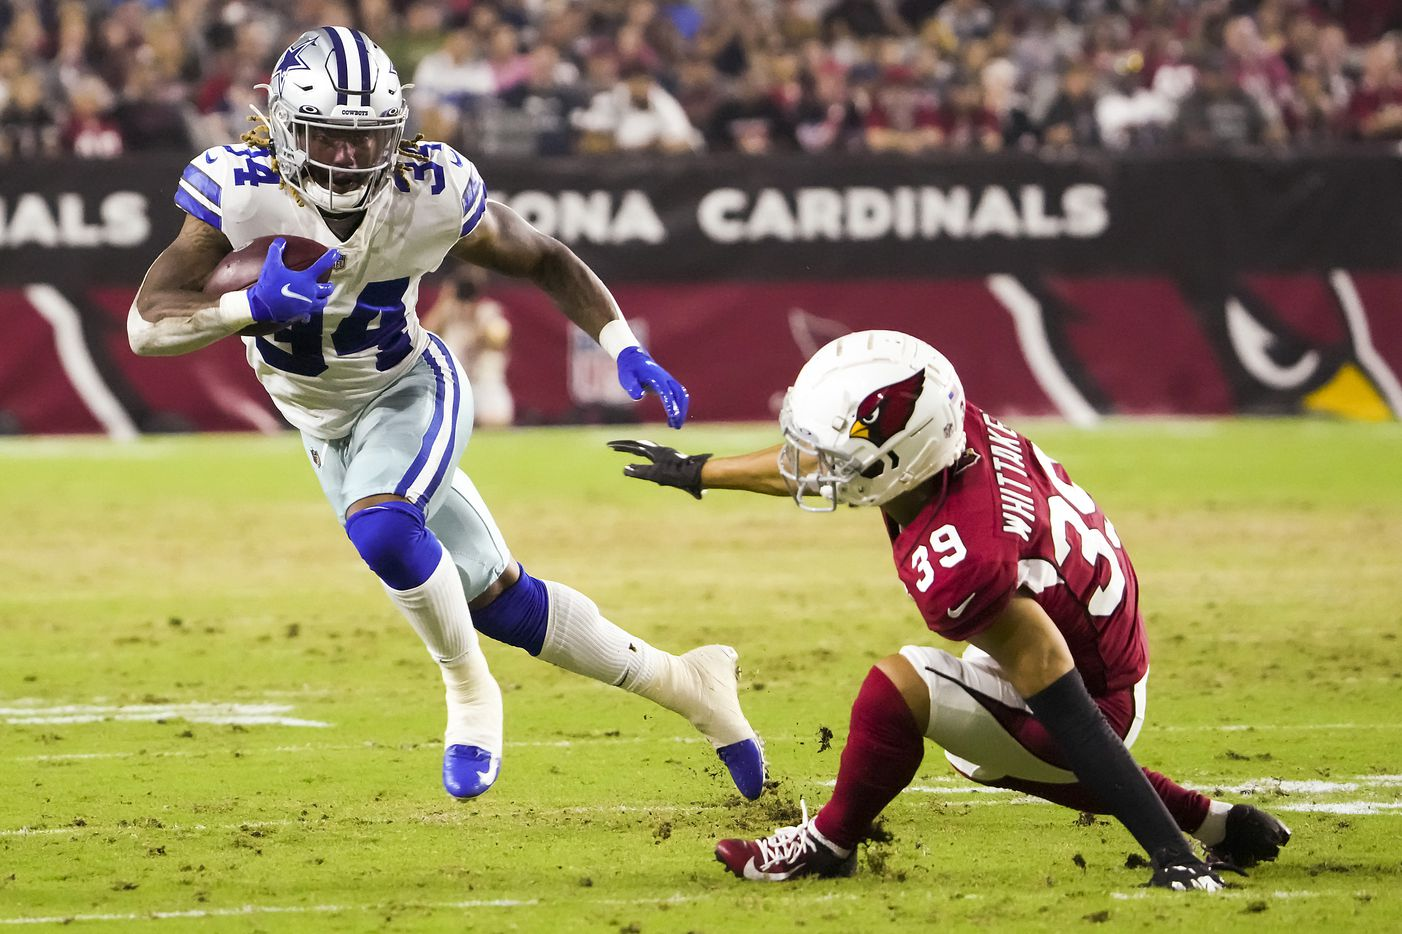 Dallas Cowboys running back Rico Dowdle (34) gets past Arizona Cardinals cornerback Jace Whittaker (39) during the first quarter of an NFL football game at State Farm Stadium on Friday, Aug. 13, 2021, in Glendale, Ariz.